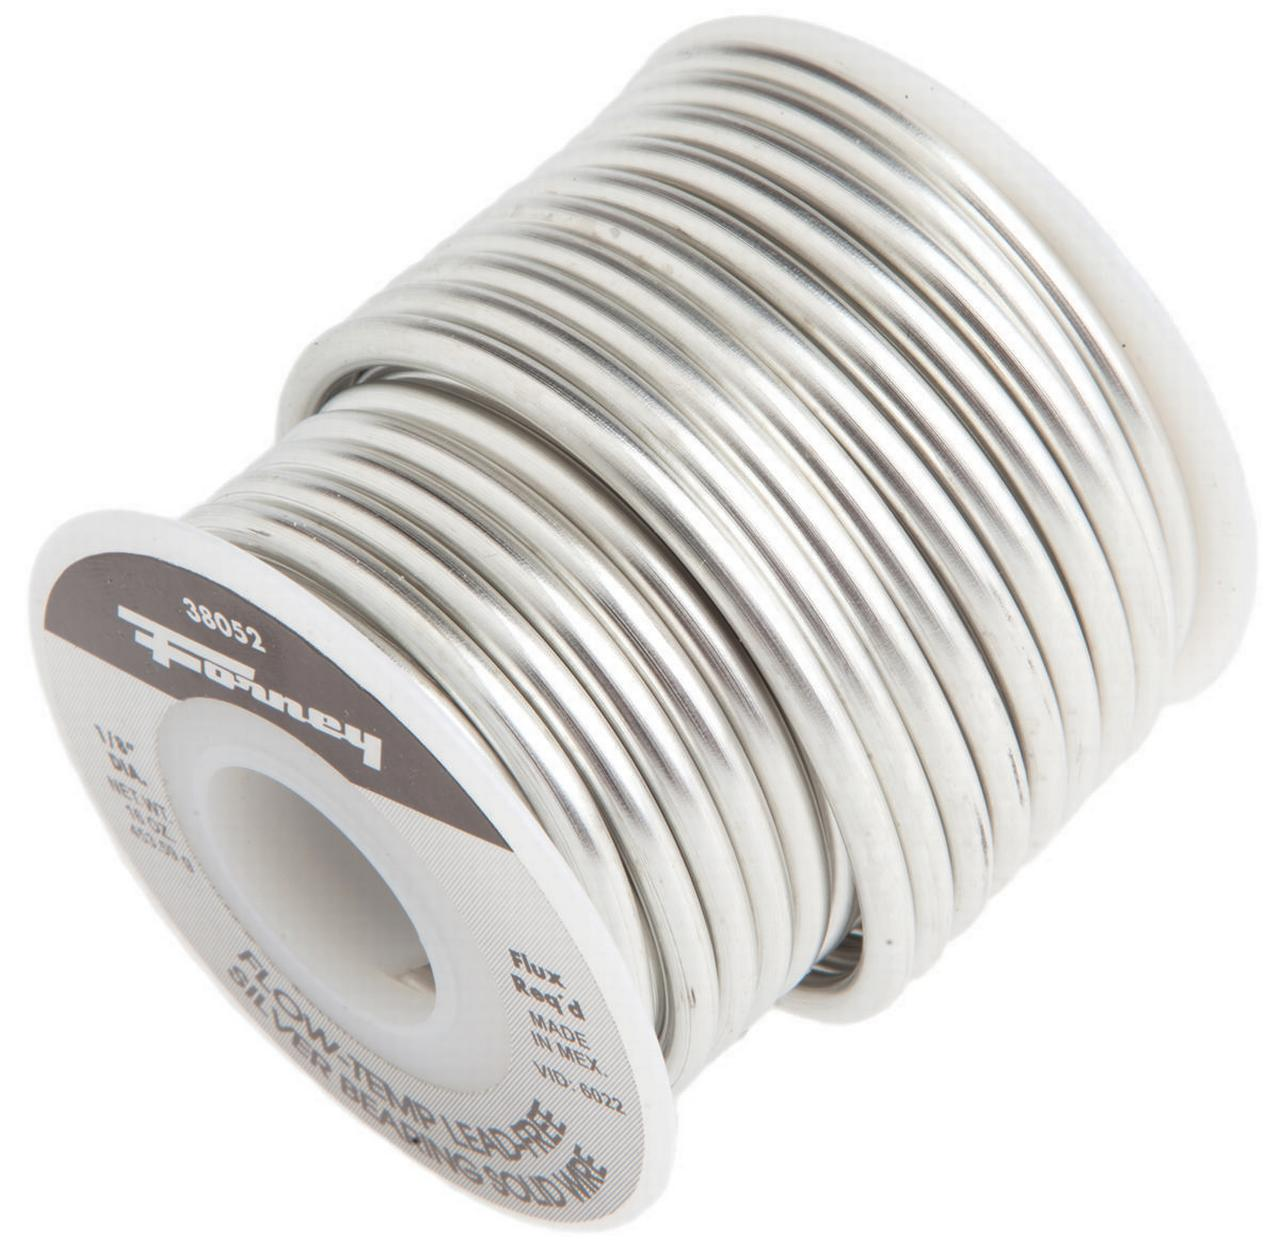 Forney 38052 Solid Core Solder, 1 lb Roll, Solid, Gray